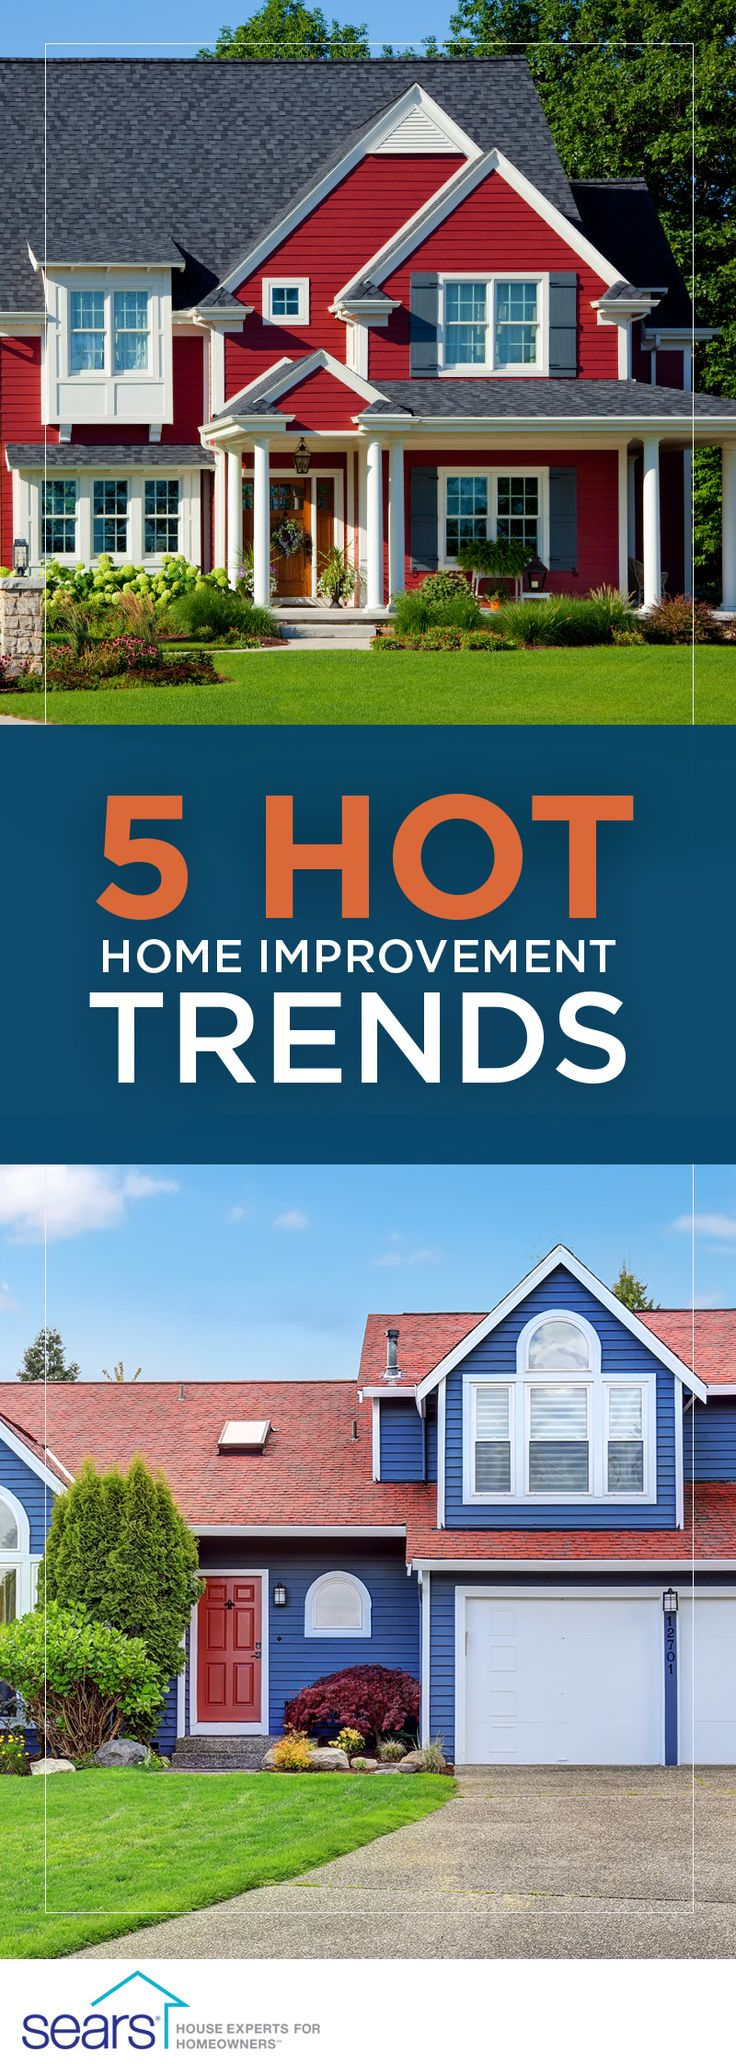 5 Hot Home Improvement Trends — This year is all about color, from dramatic colored siding to bronze window frames. Sears' exterior product guru talks the latest design trends for siding, roofs, windows and doors and how you can get the look.